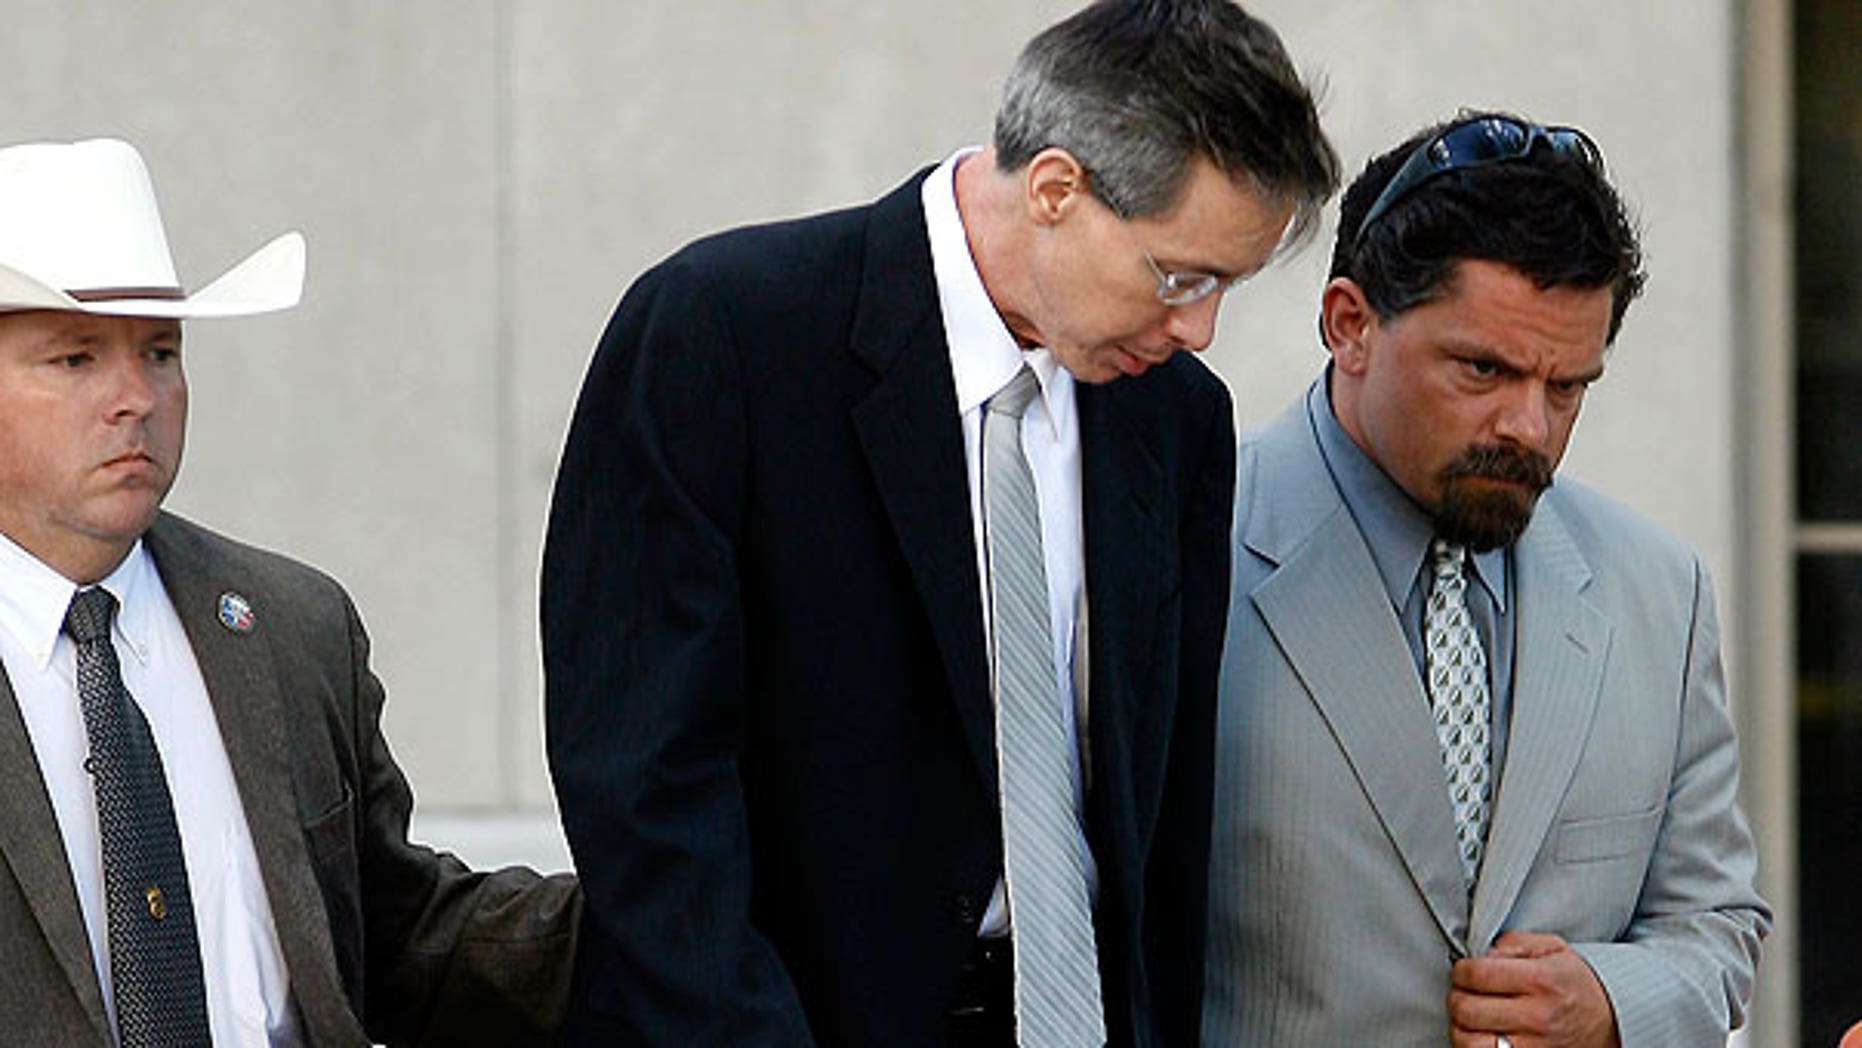 Aug. 4: Polygamist sect leader Warren Jeffs walks out of the Tom Green County Courthouse with his former attorney Deric Walpole in San Angelo, Texas.